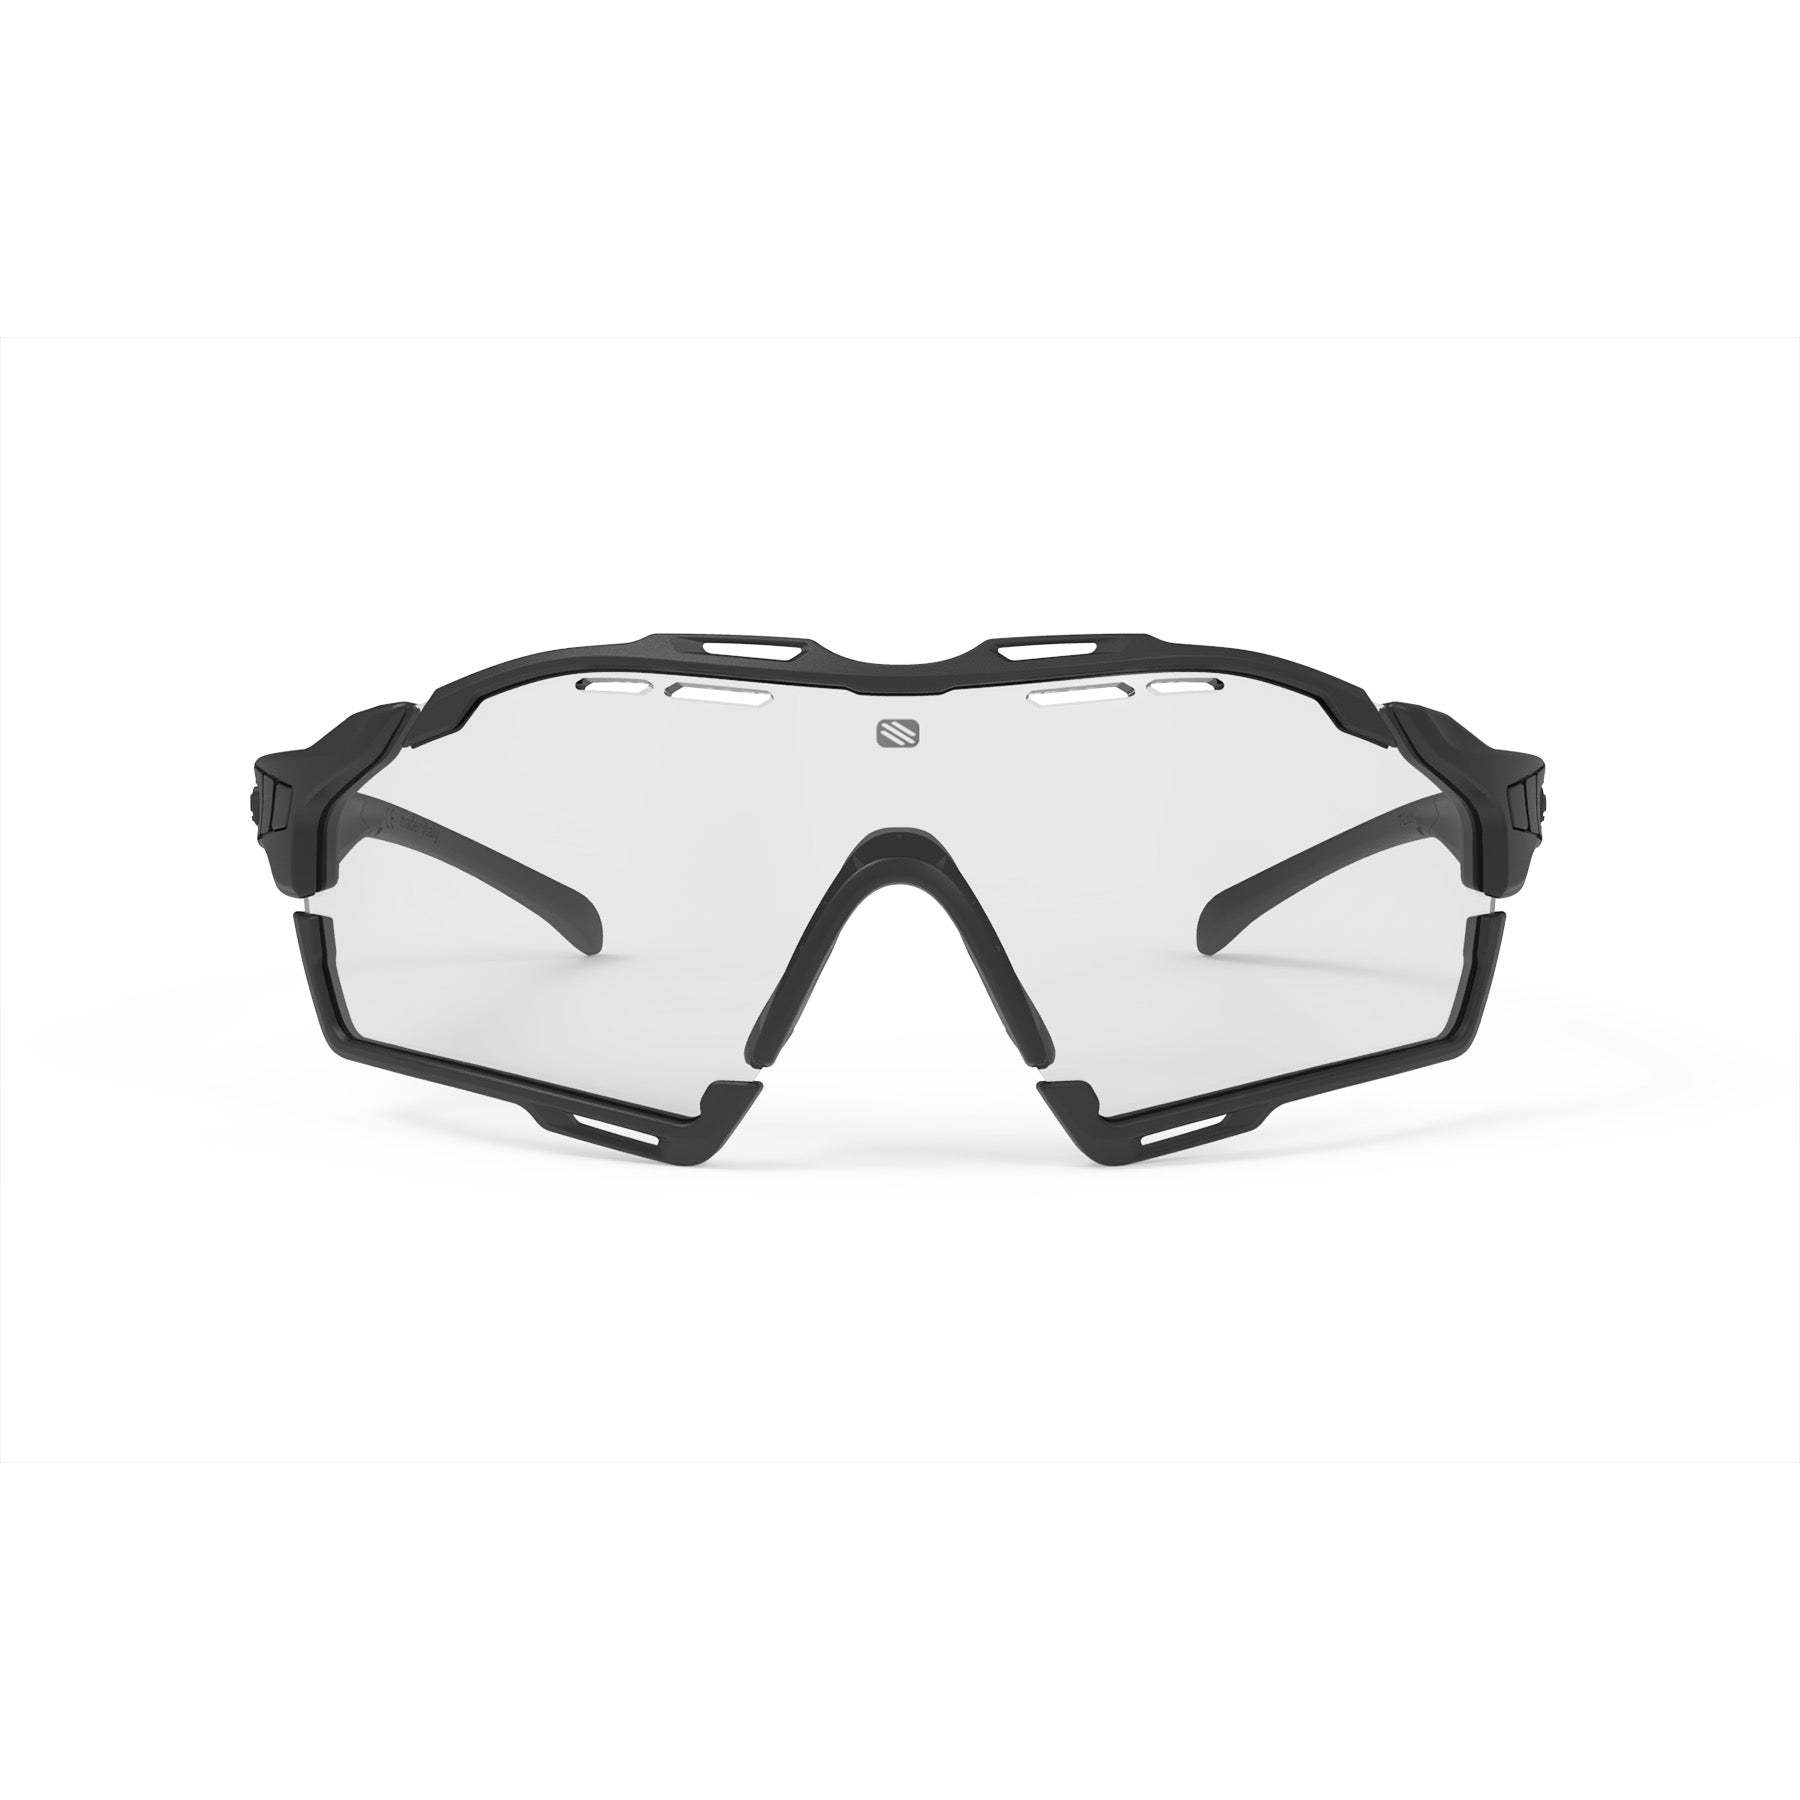 Rudy Project - Cutline - frame color: Matte Black - lens color: ImpactX-2 Photochromic Clear to Black - Bumper Color: Black - photo angle: Front View Variant Hover Image